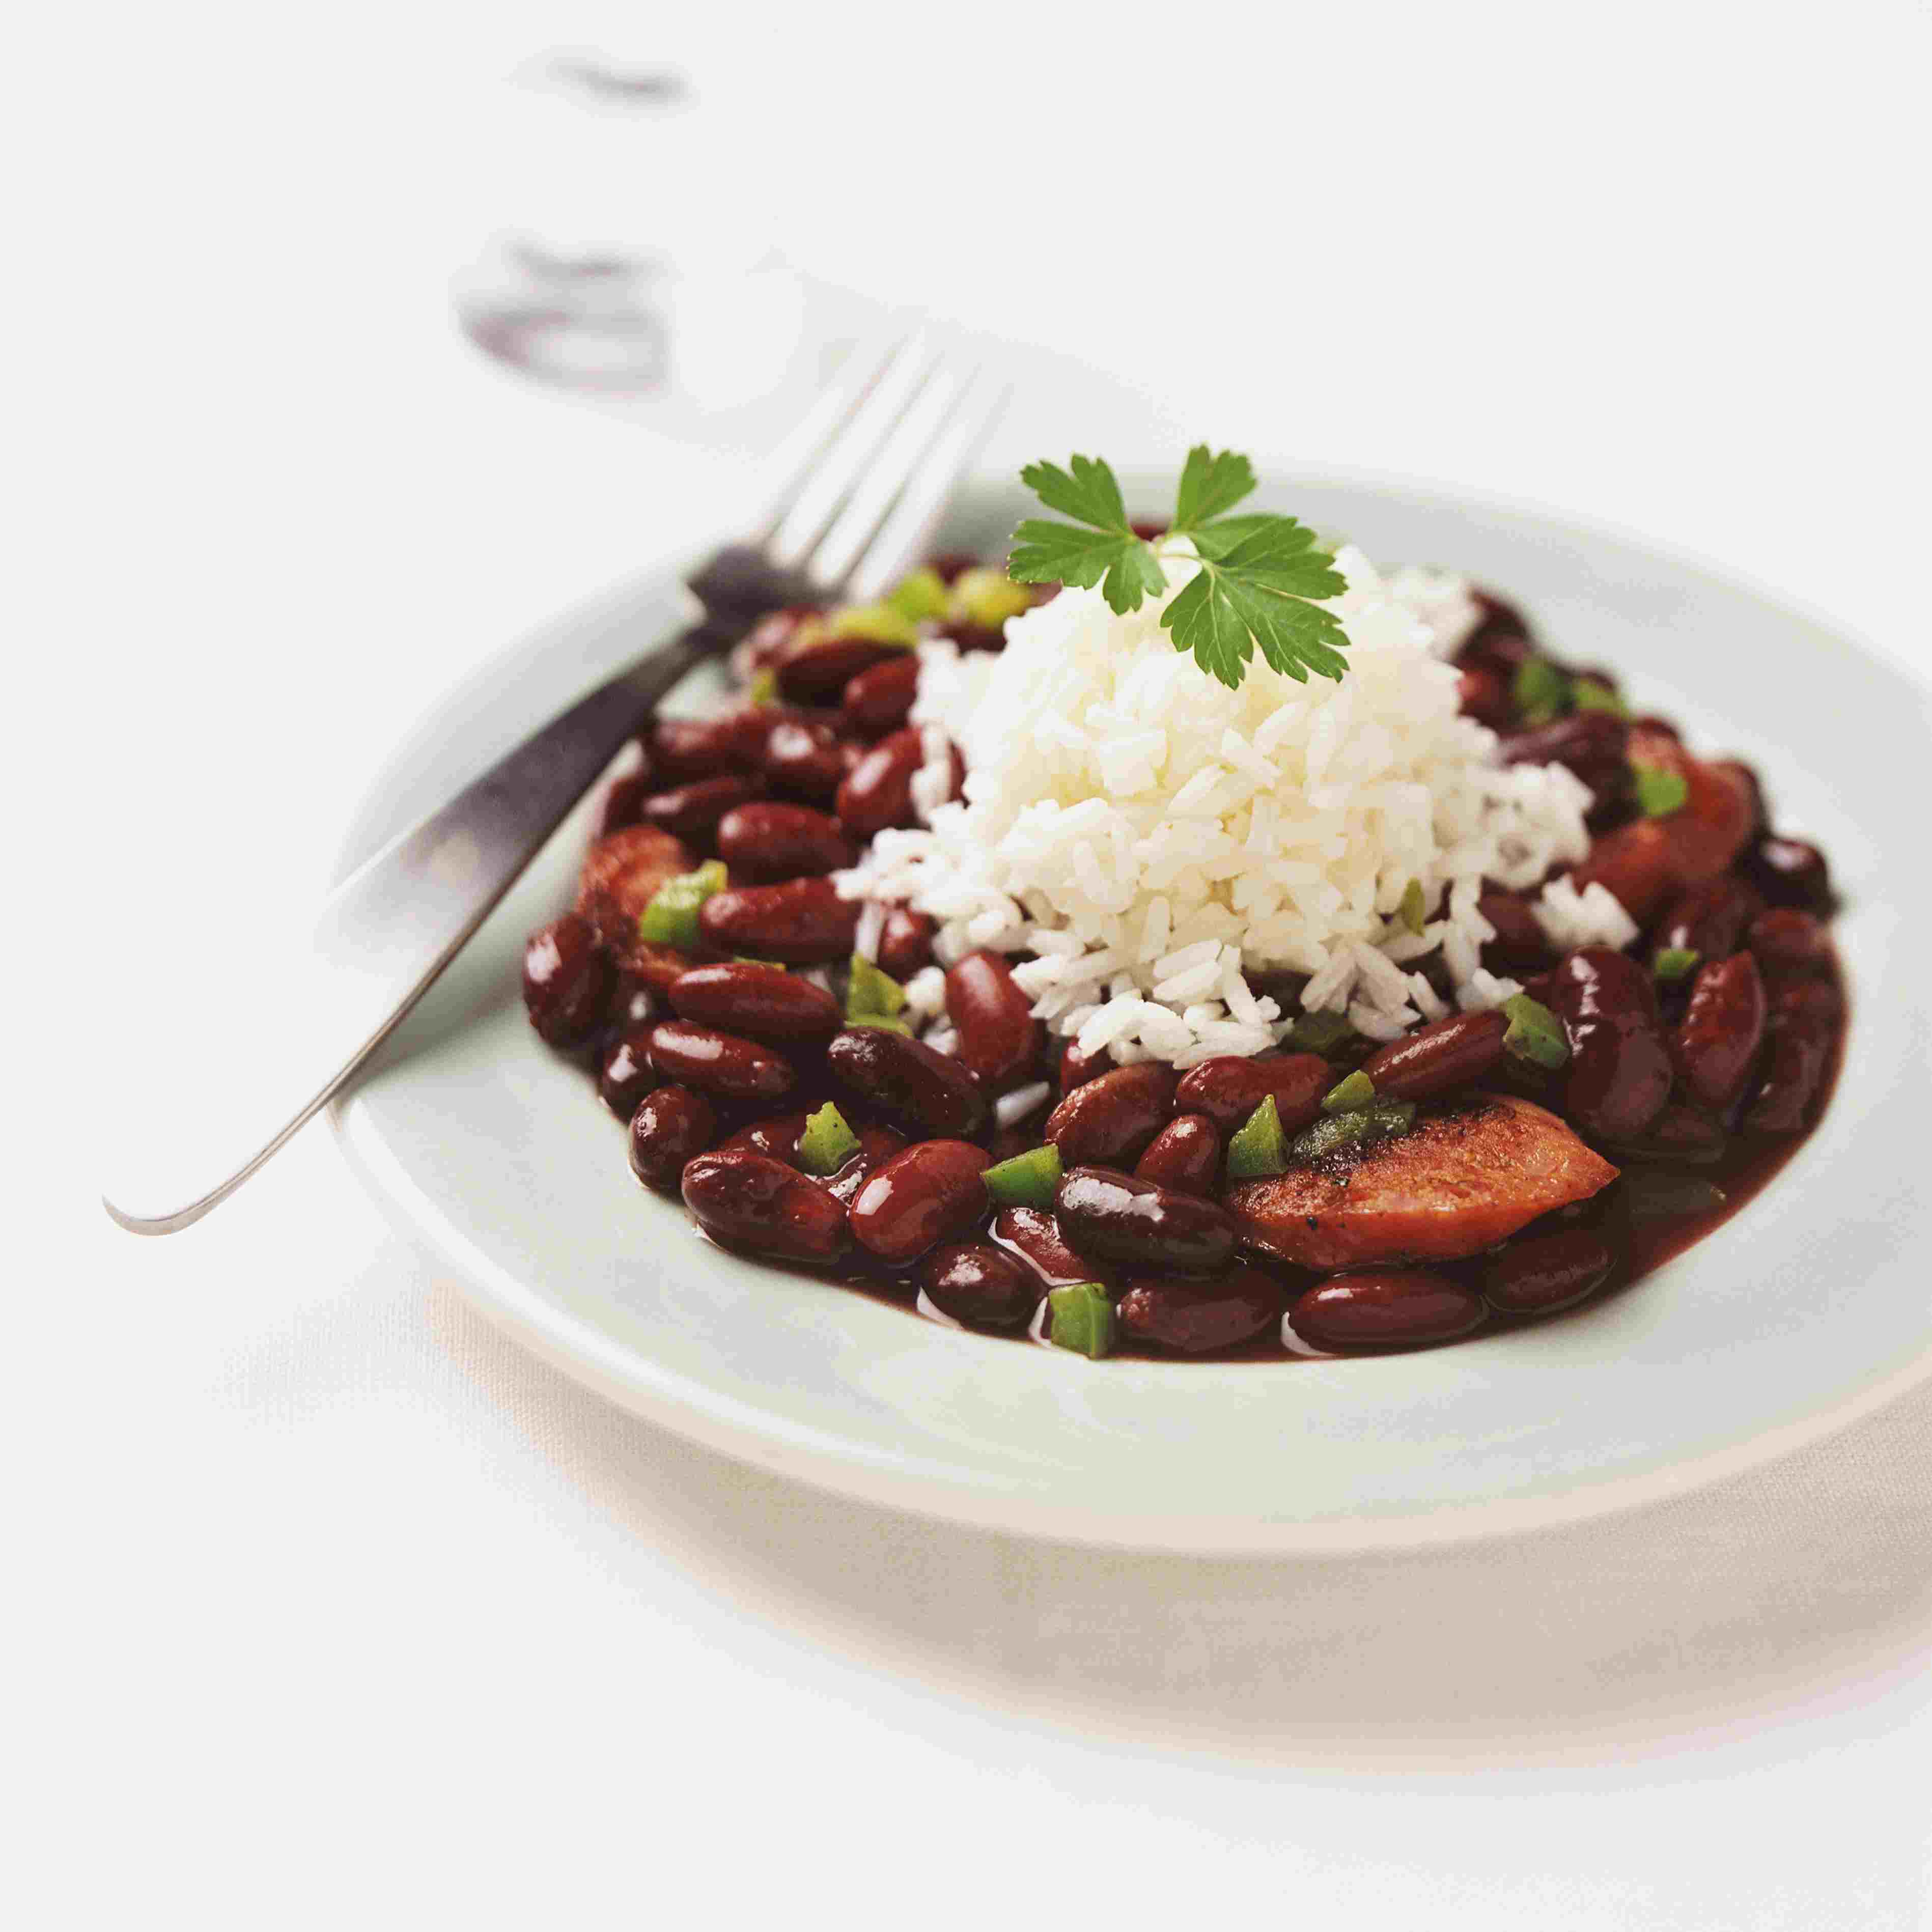 Plate With Chorizo, Red Kidney Beans and Rice